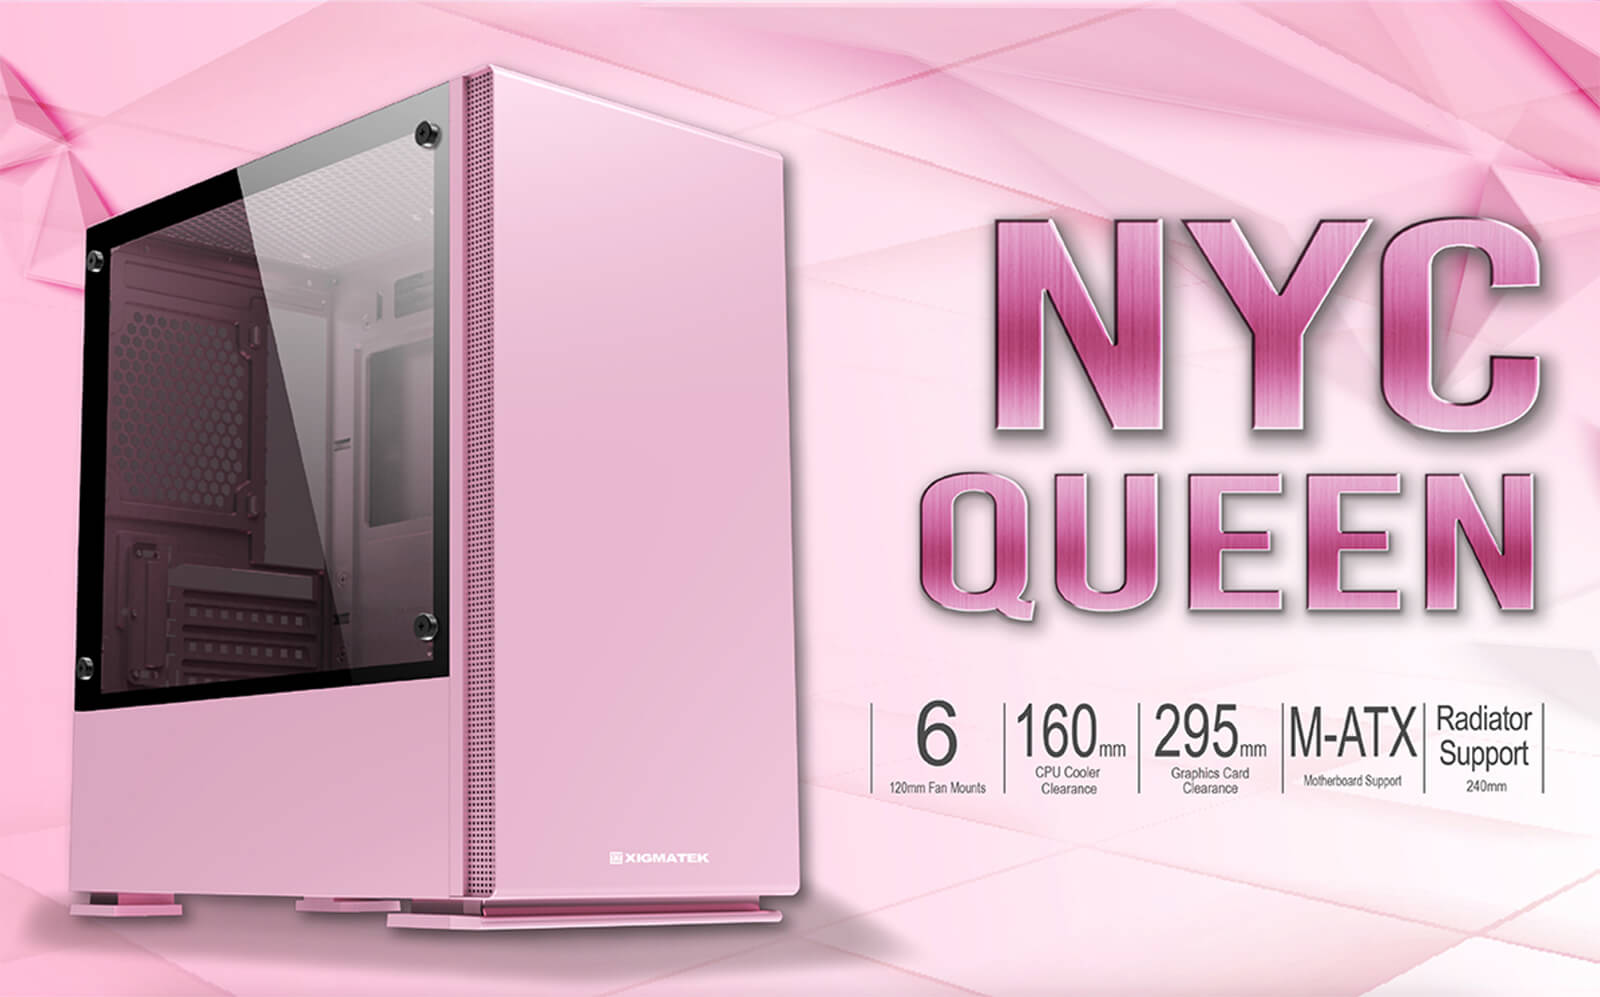 Case Xigmatek Nyc Queen Pink Mini Tower Case Feature